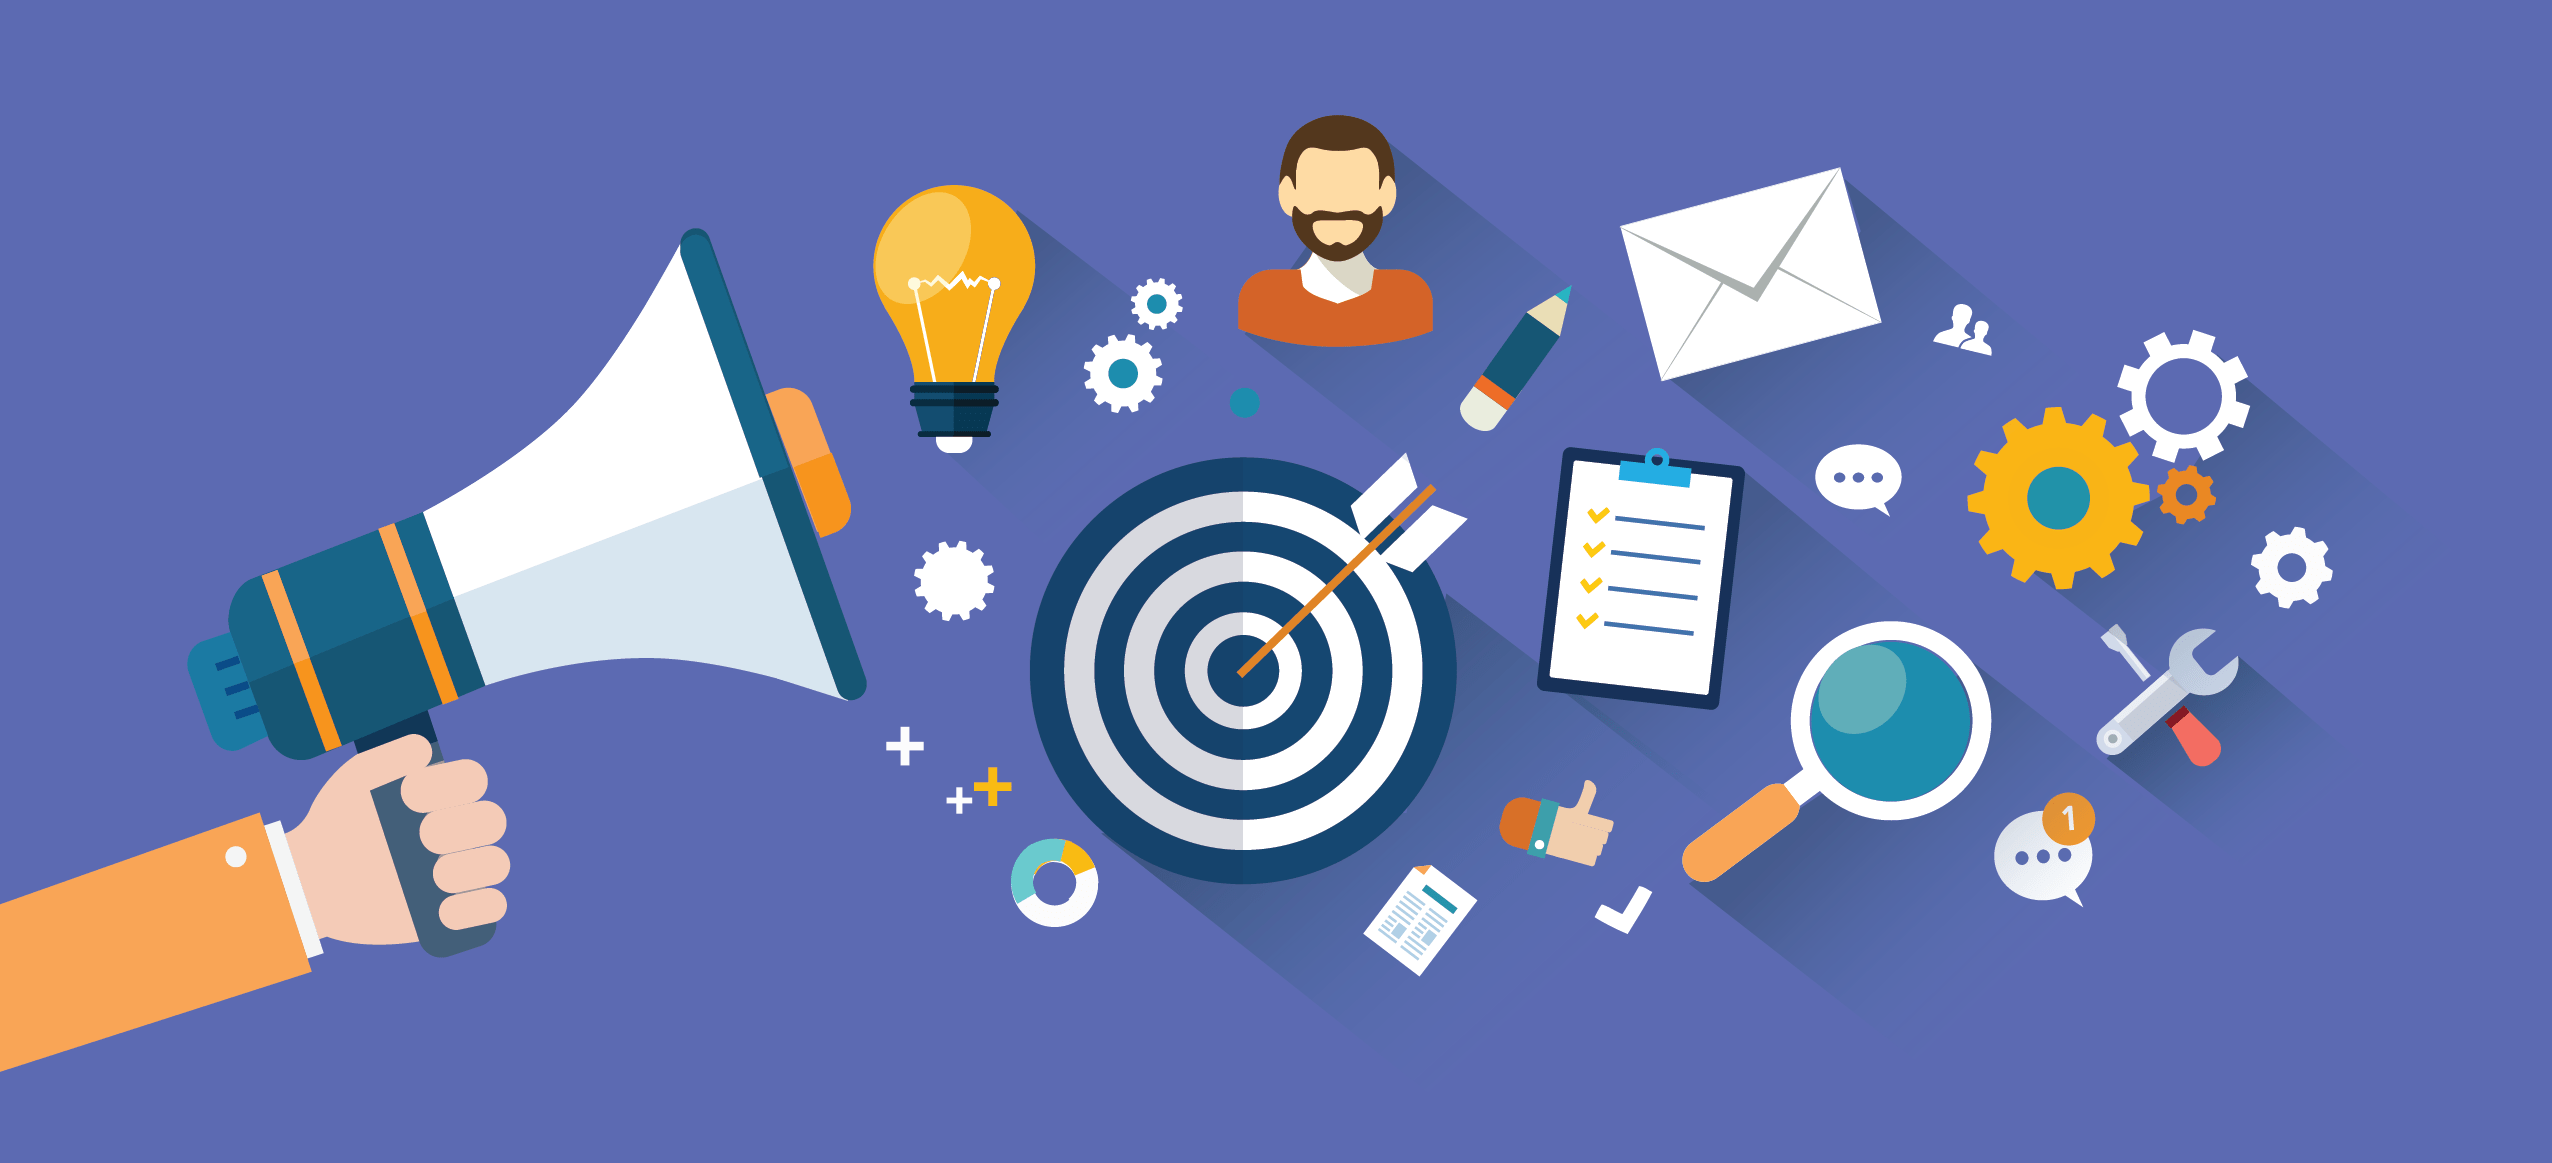 The Marketing KPIs Your Team Should Be Tracking